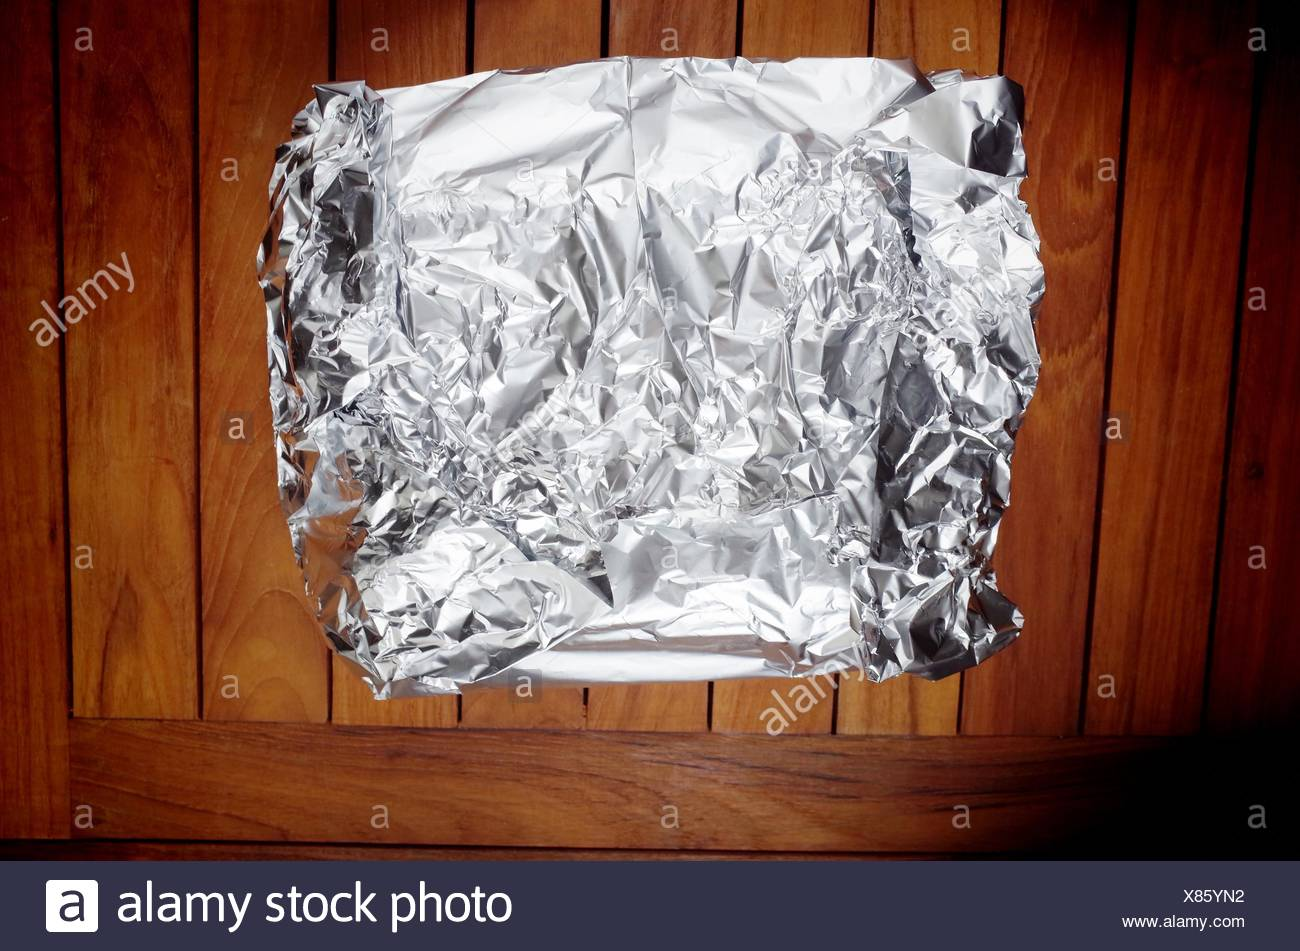 High Angle View Of Aluminum Foil Wrapped Box On Table - Stock Image